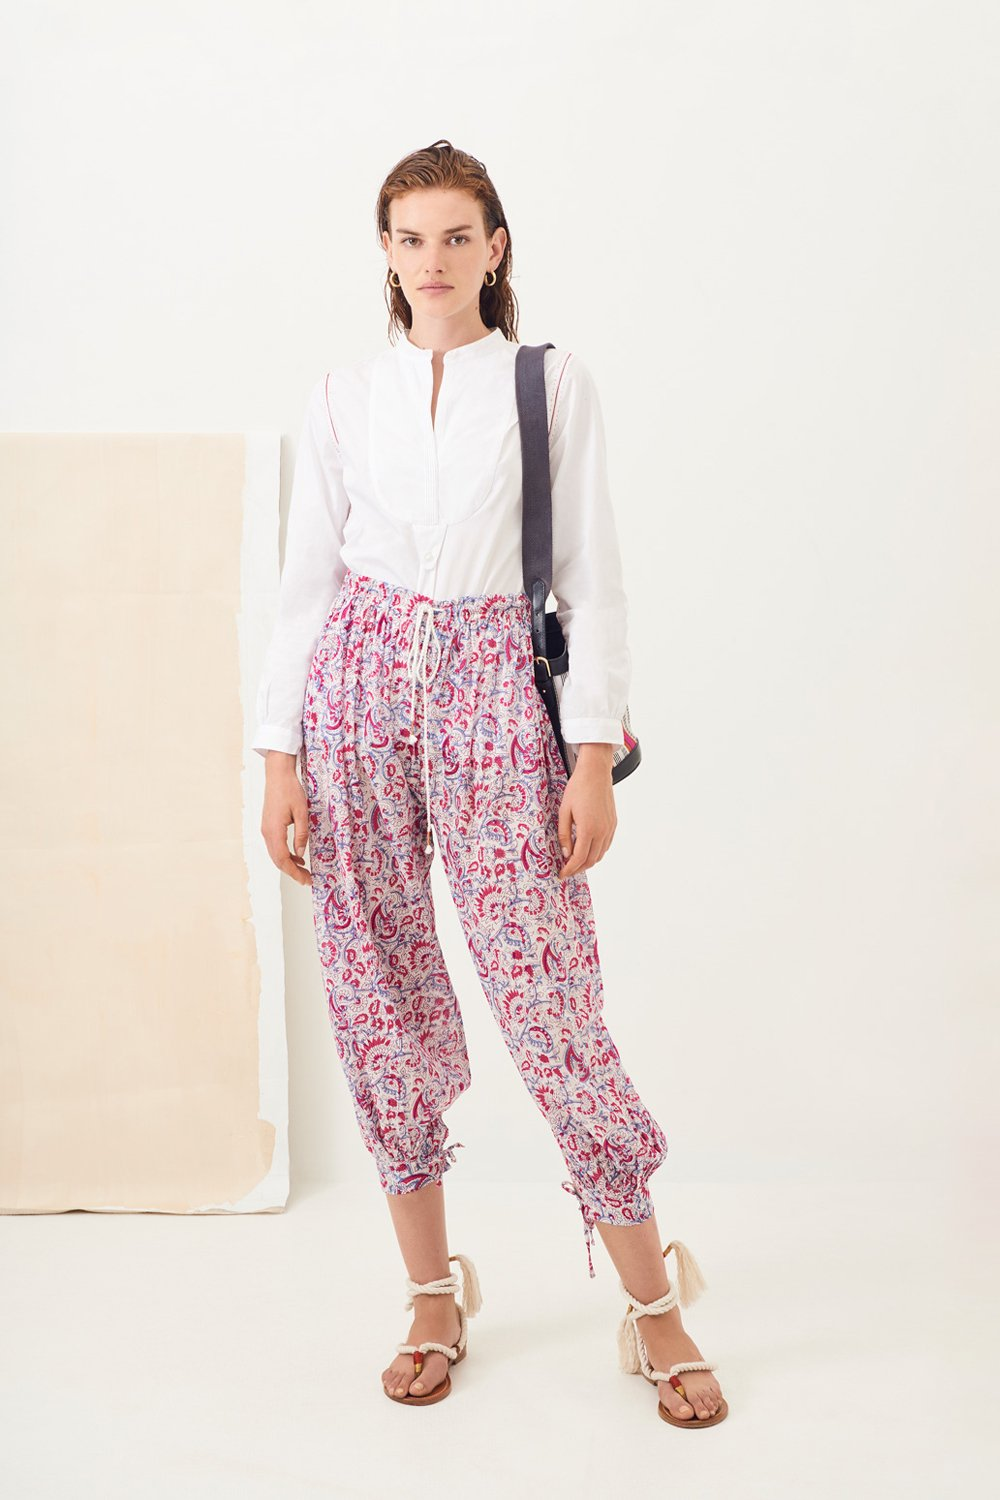 Pantalon sarouel imprimé Chérie - Rose - Antik Batik (photo)